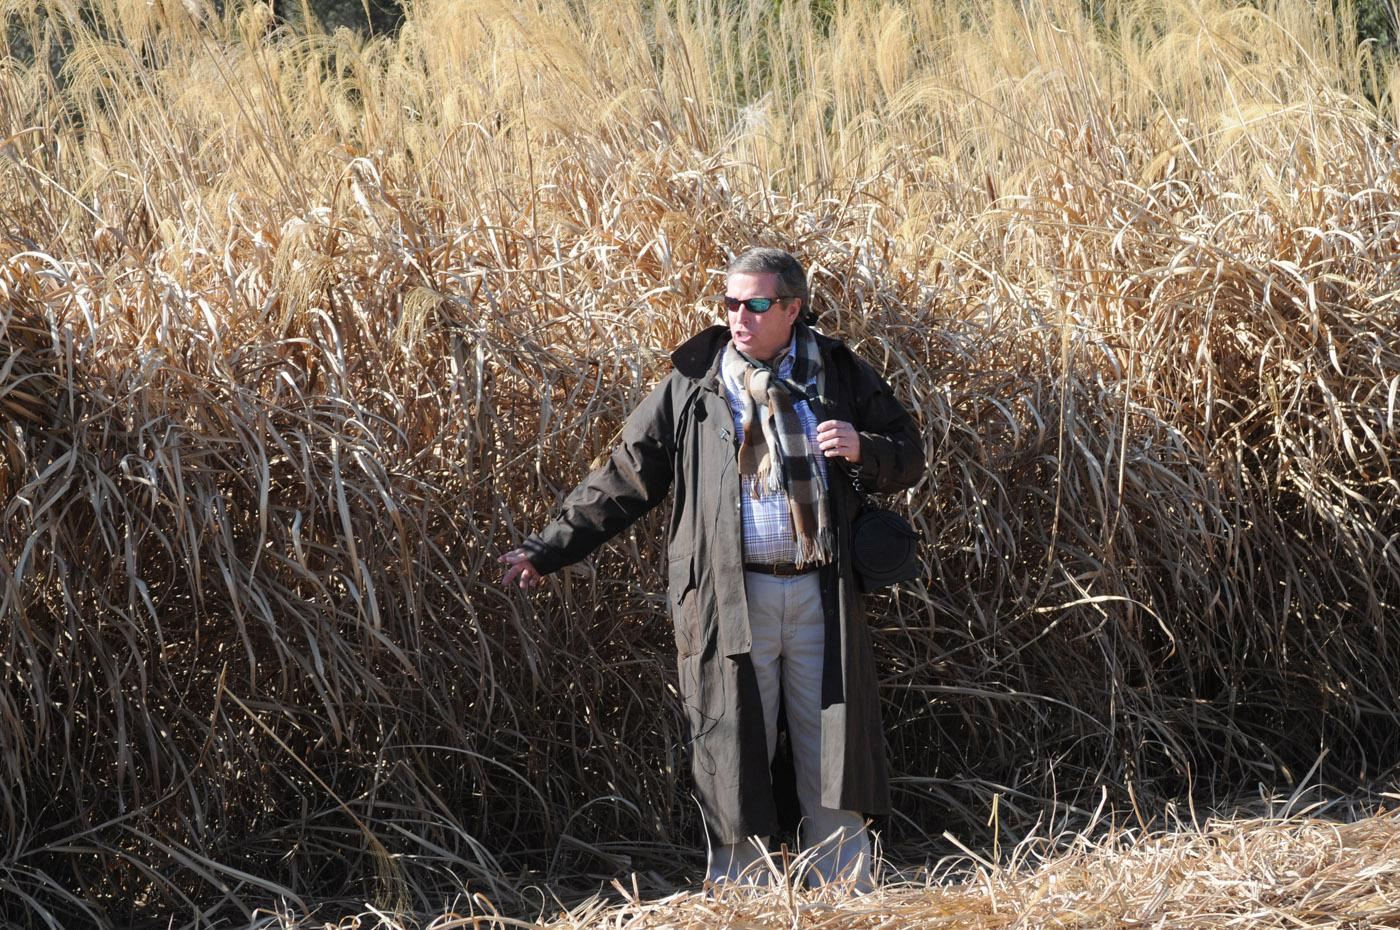 Freedom Giant Miscanthus was developed at Mississippi State University and is licensed exclusively to Repreve Renewables, a joint venture between sod entrepreneur Phillip Jennings (pictured) and publicly traded textile company UNIFI Manufacturing, Inc. (Photo by Kat Lawrence)